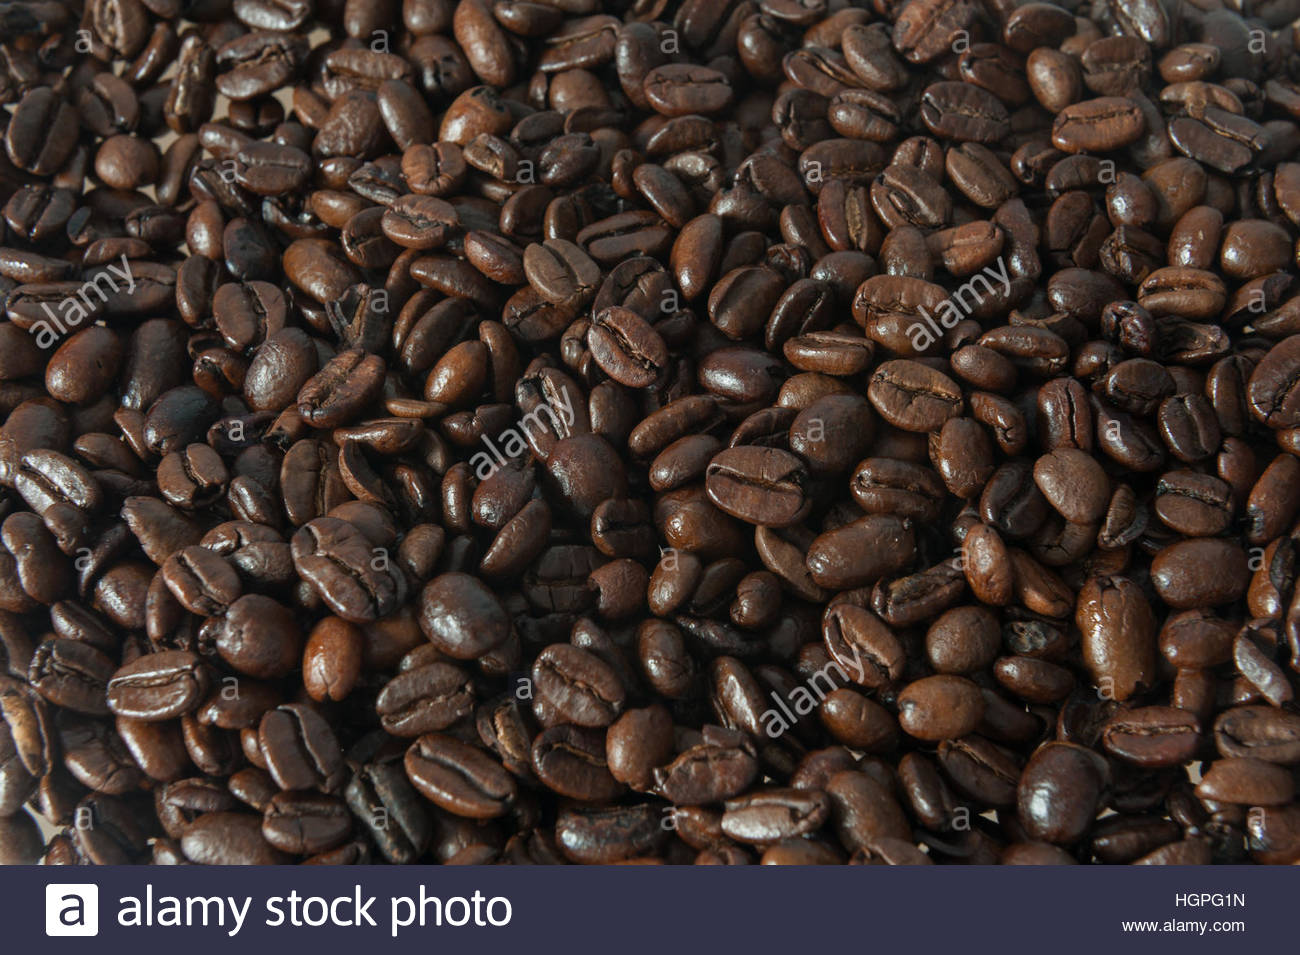 Frame filling coffee beans. - Stock Image